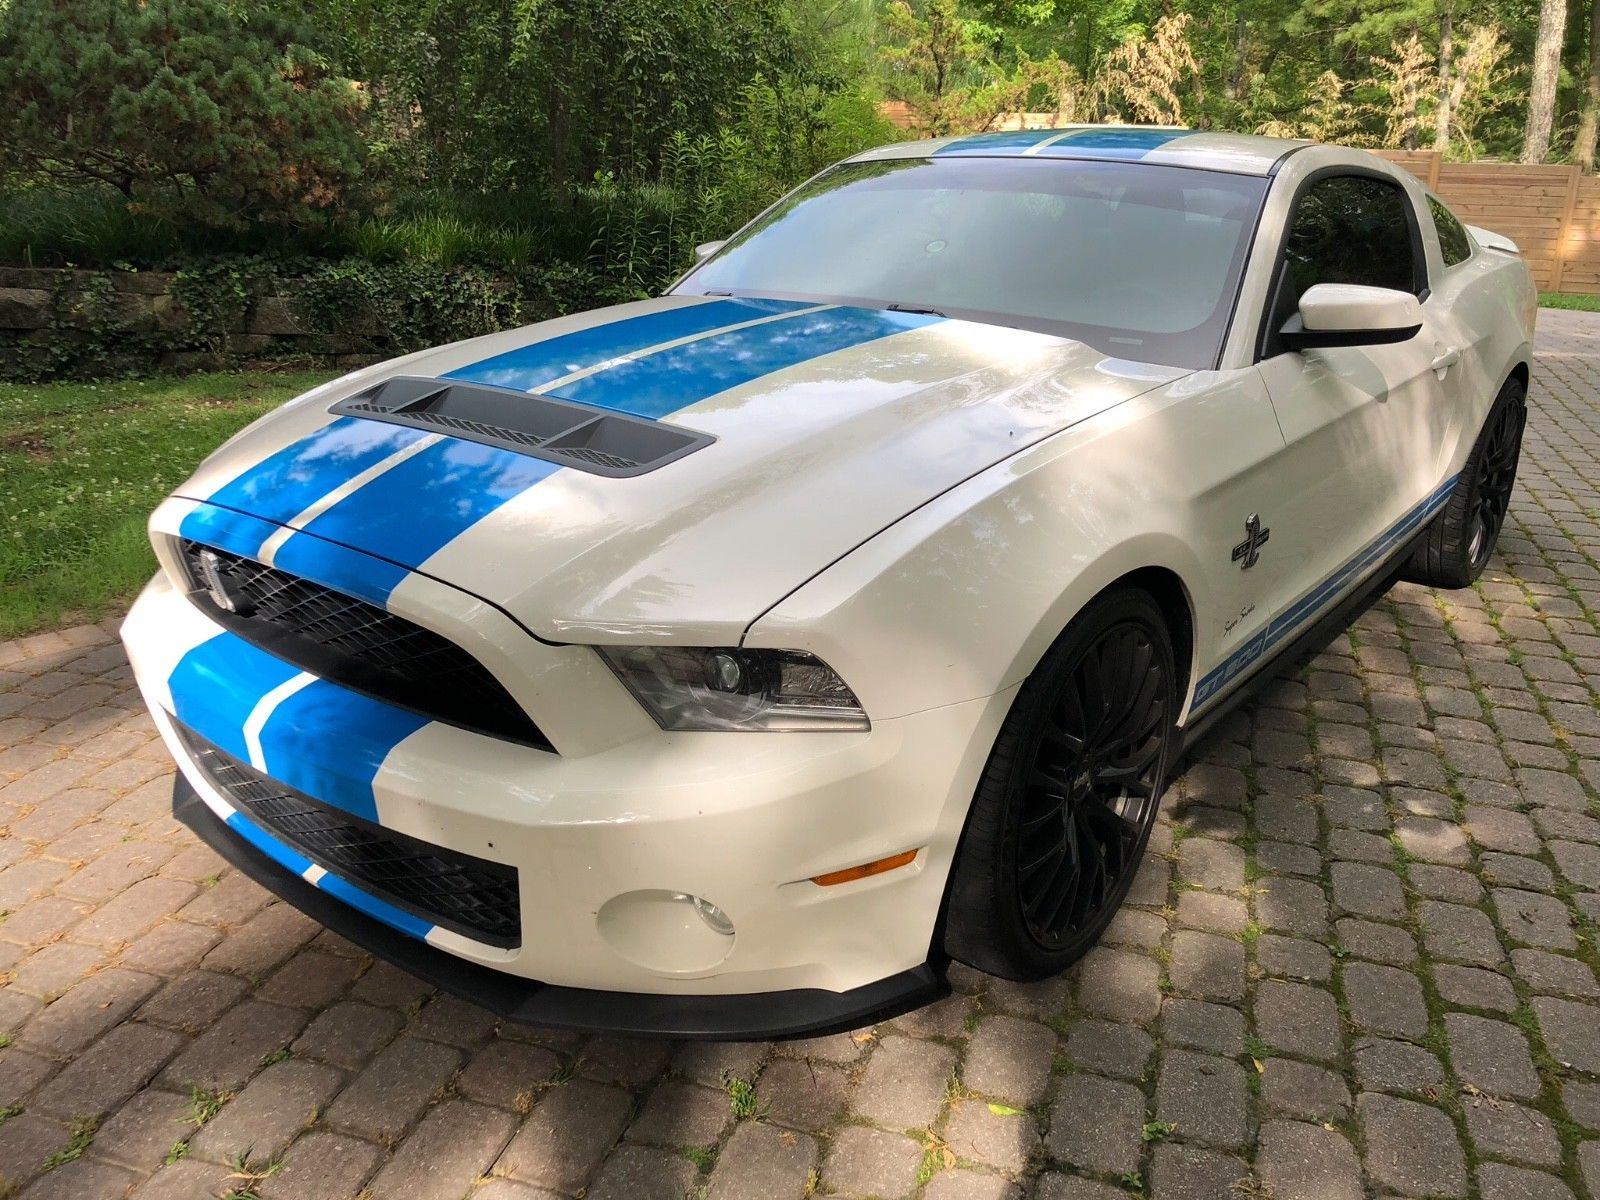 Amazing 2012 ford mustang shelby gt500 2012 shelby mustang gt500 supercharged to 800hp 2019